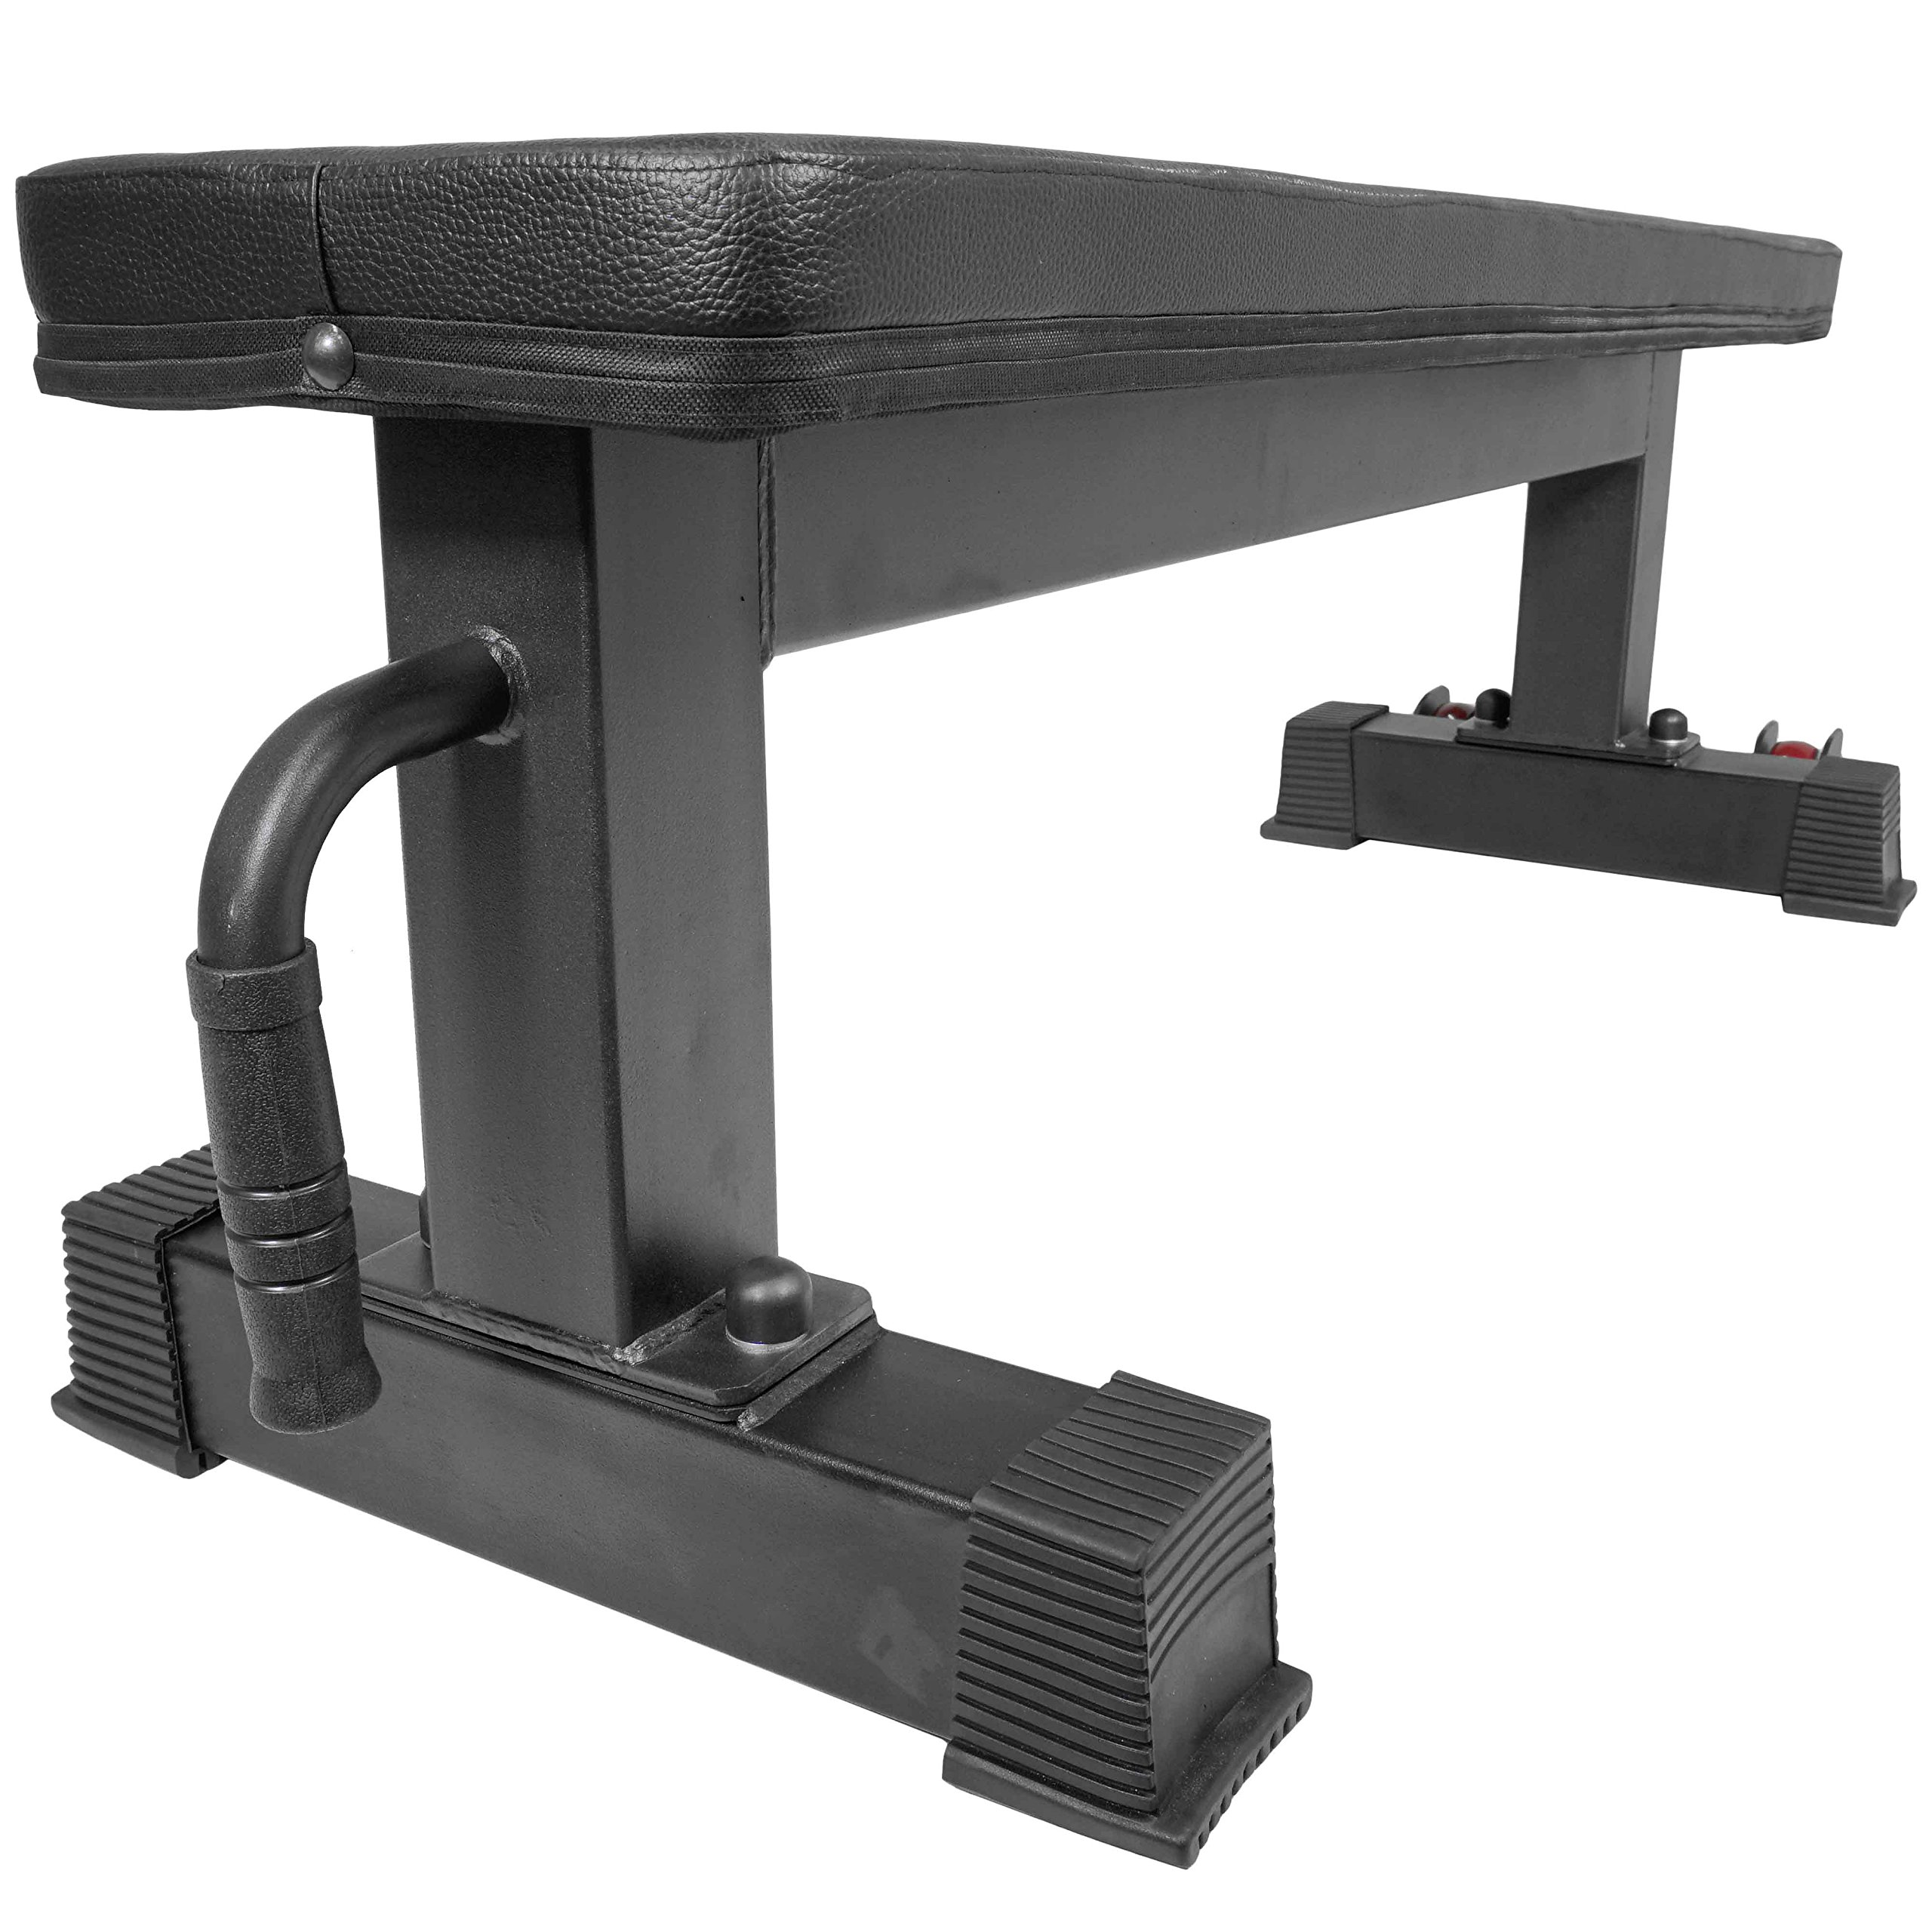 Titan Fitness Flat Weight Bench 1,000 lb Rated Capacity w/ Handle & Wheels by Titan Fitness (Image #5)